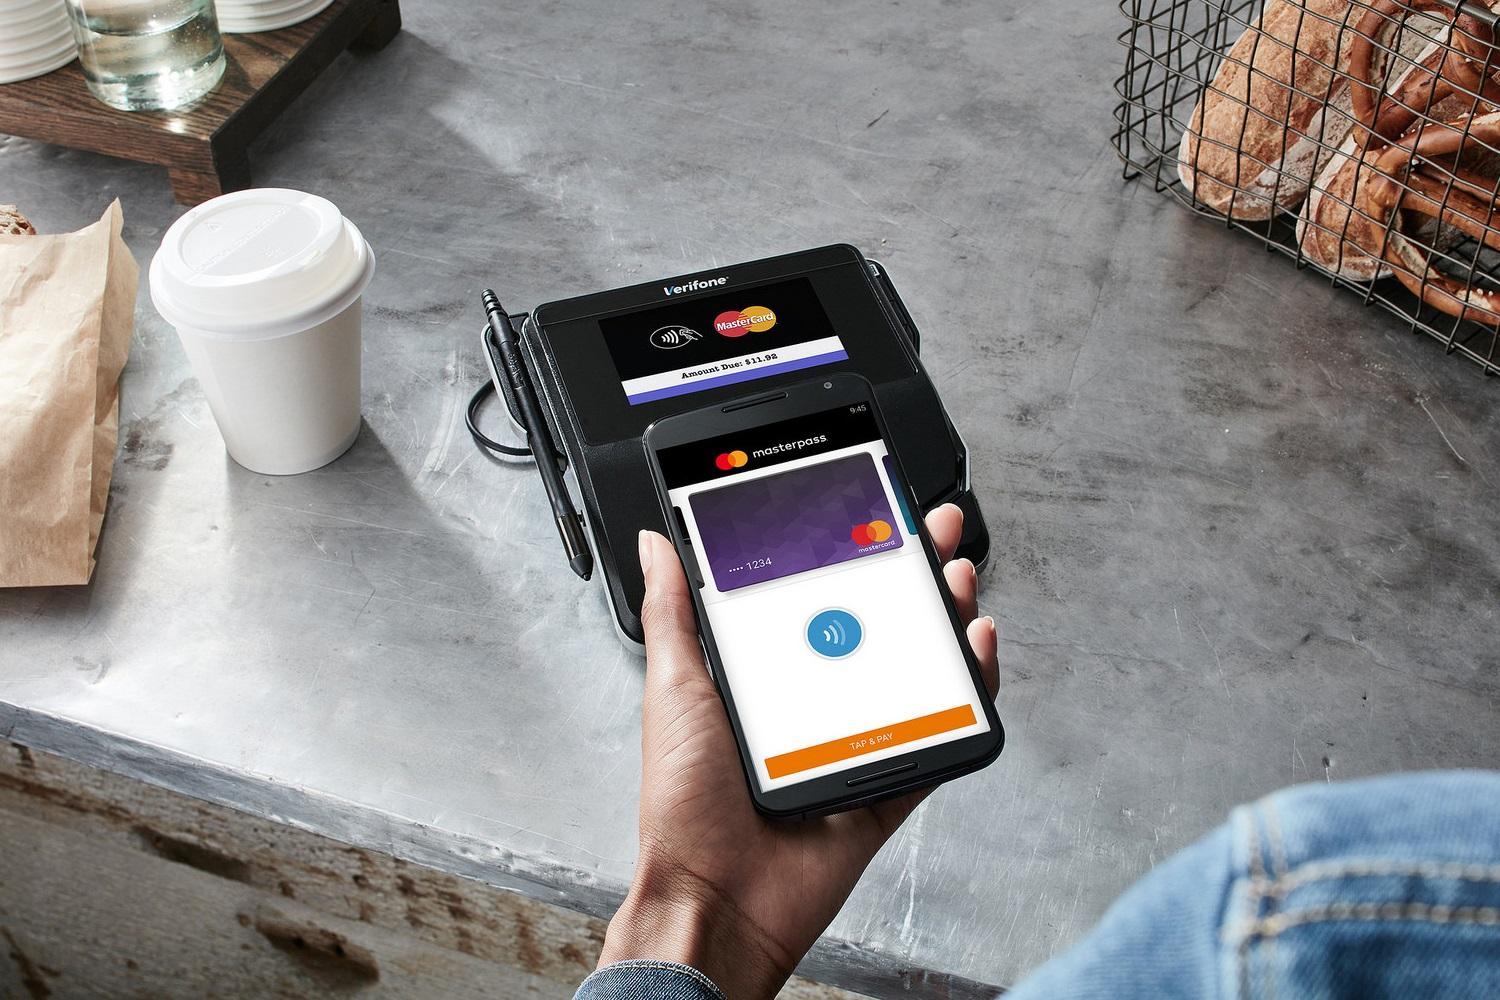 Mastercard Expands Mobile Order-Ahead Platform for Retailers and On-The-Go Consumers